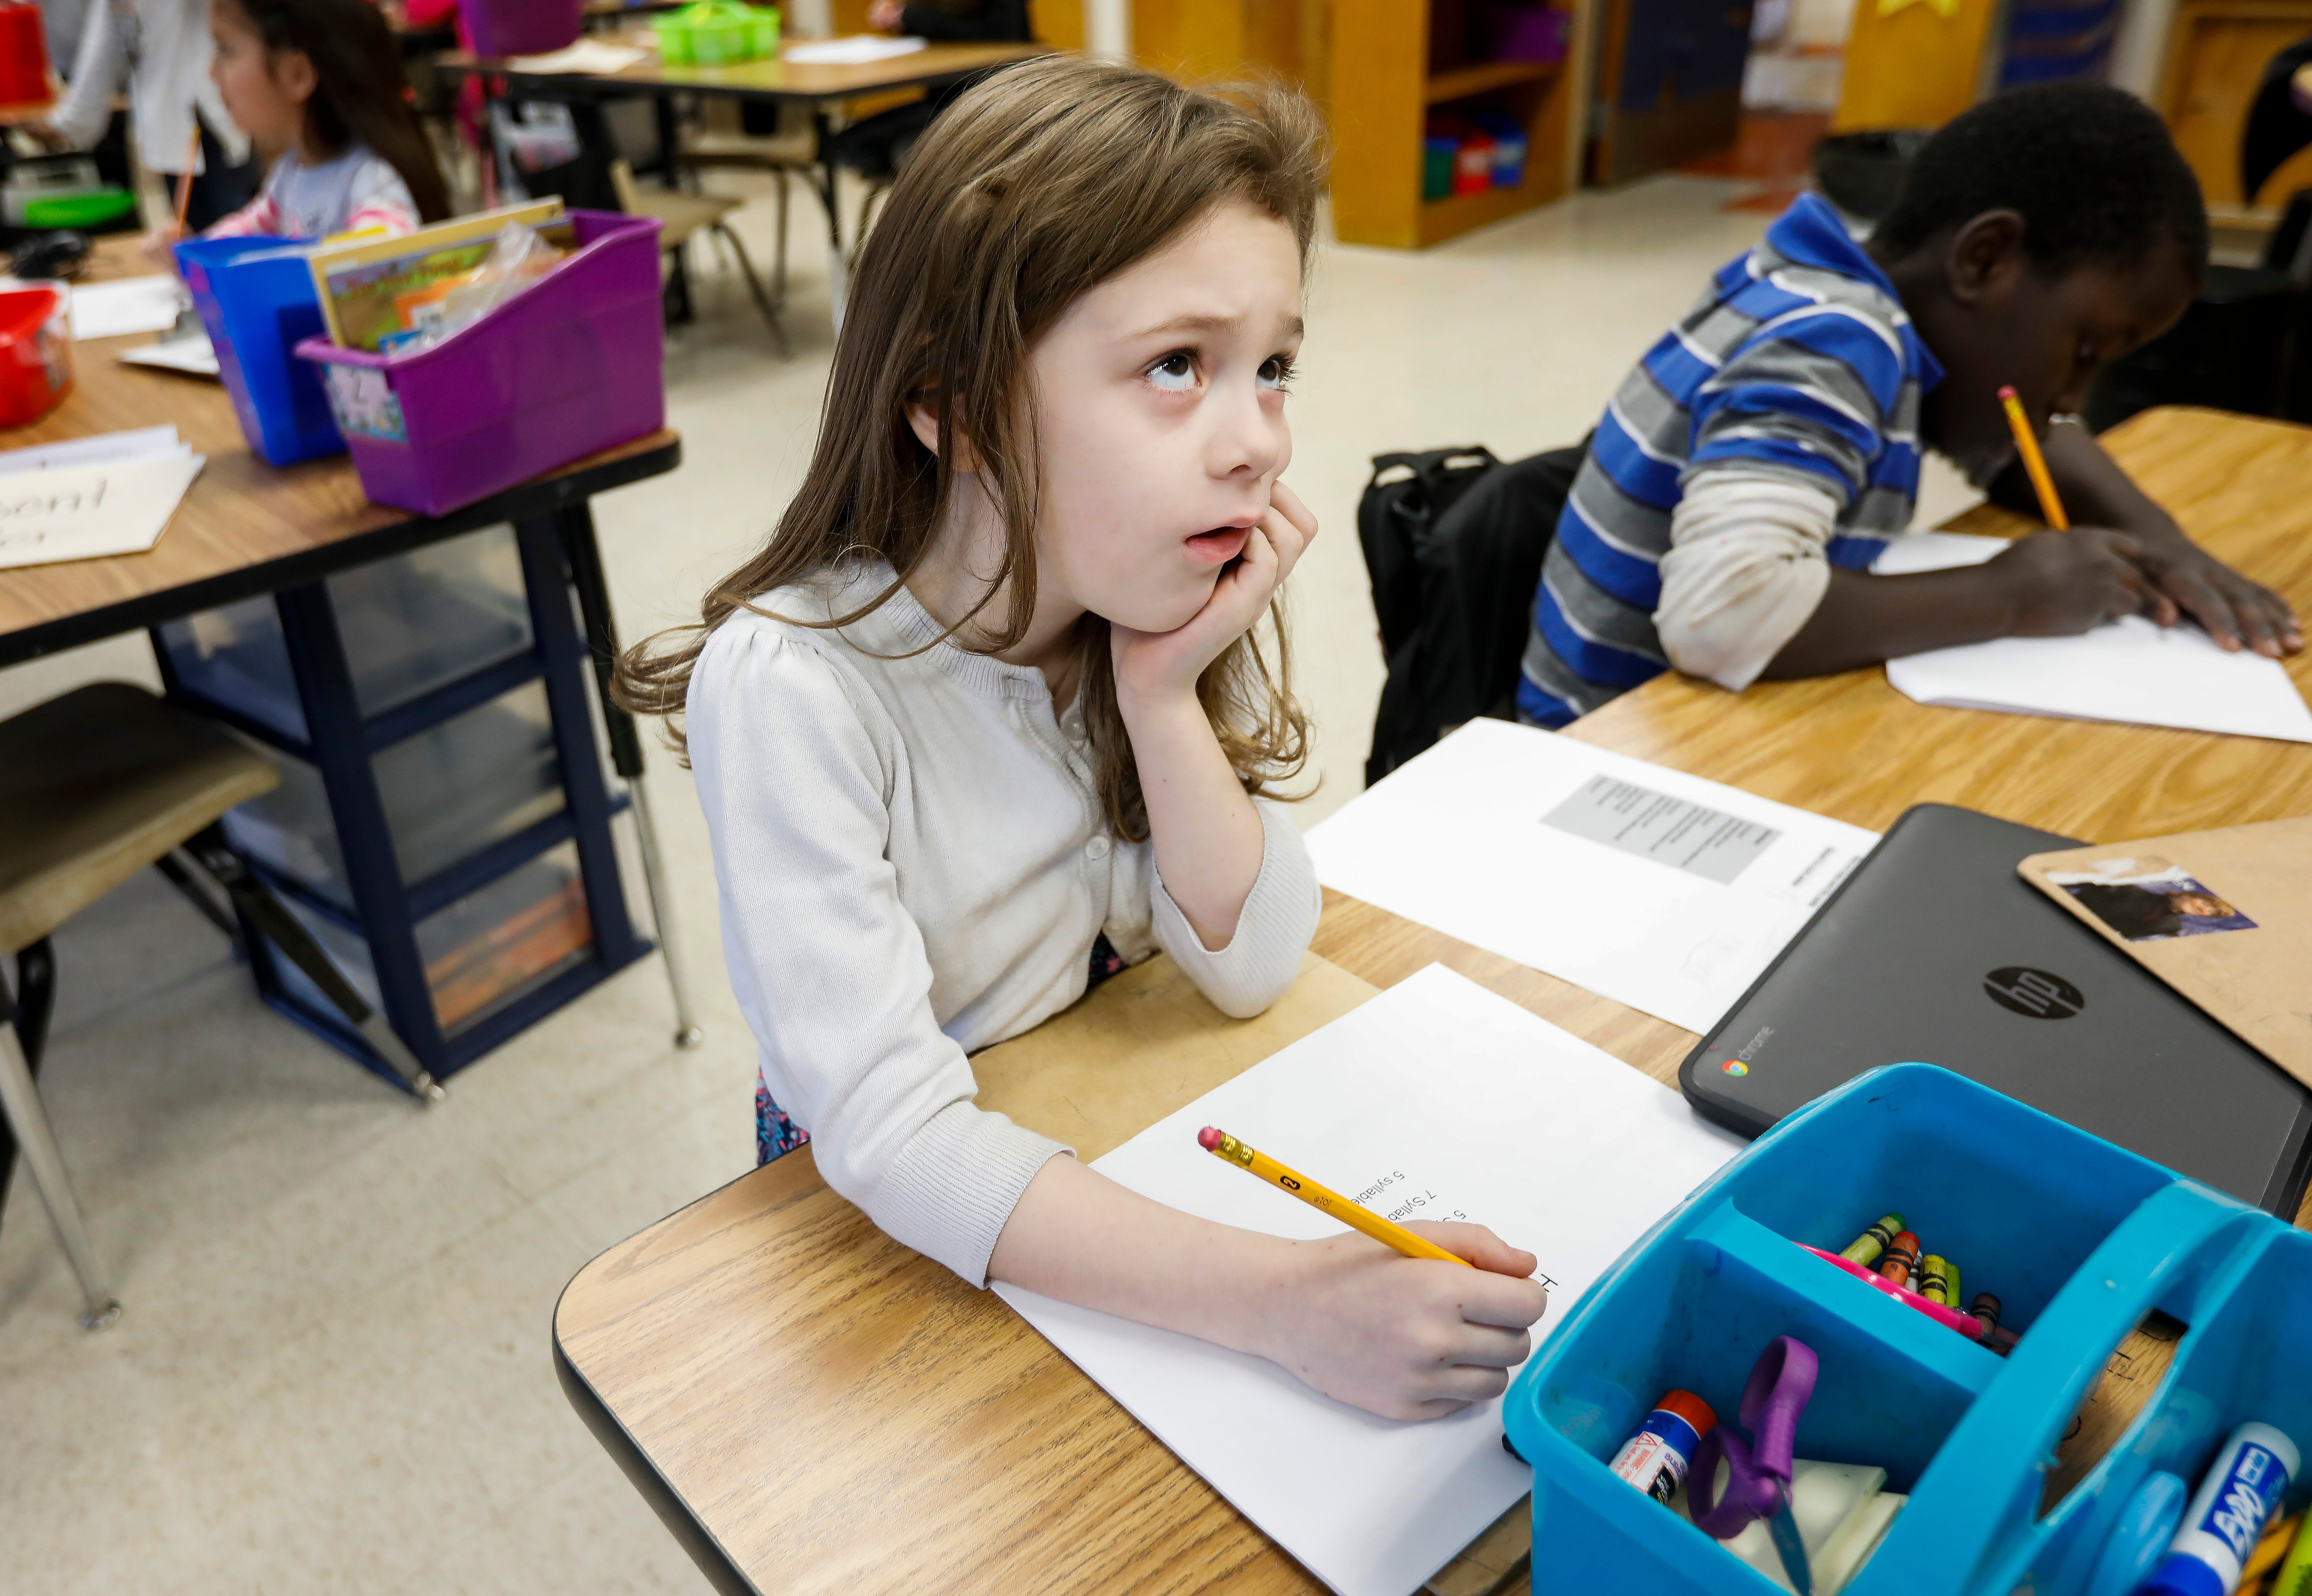 Kaitlyn Stoops, a third grade student at Weller Elementary School, concentrates on coming up with the beginning of her haiku during class on Thursday, Jan. 31, 2019.